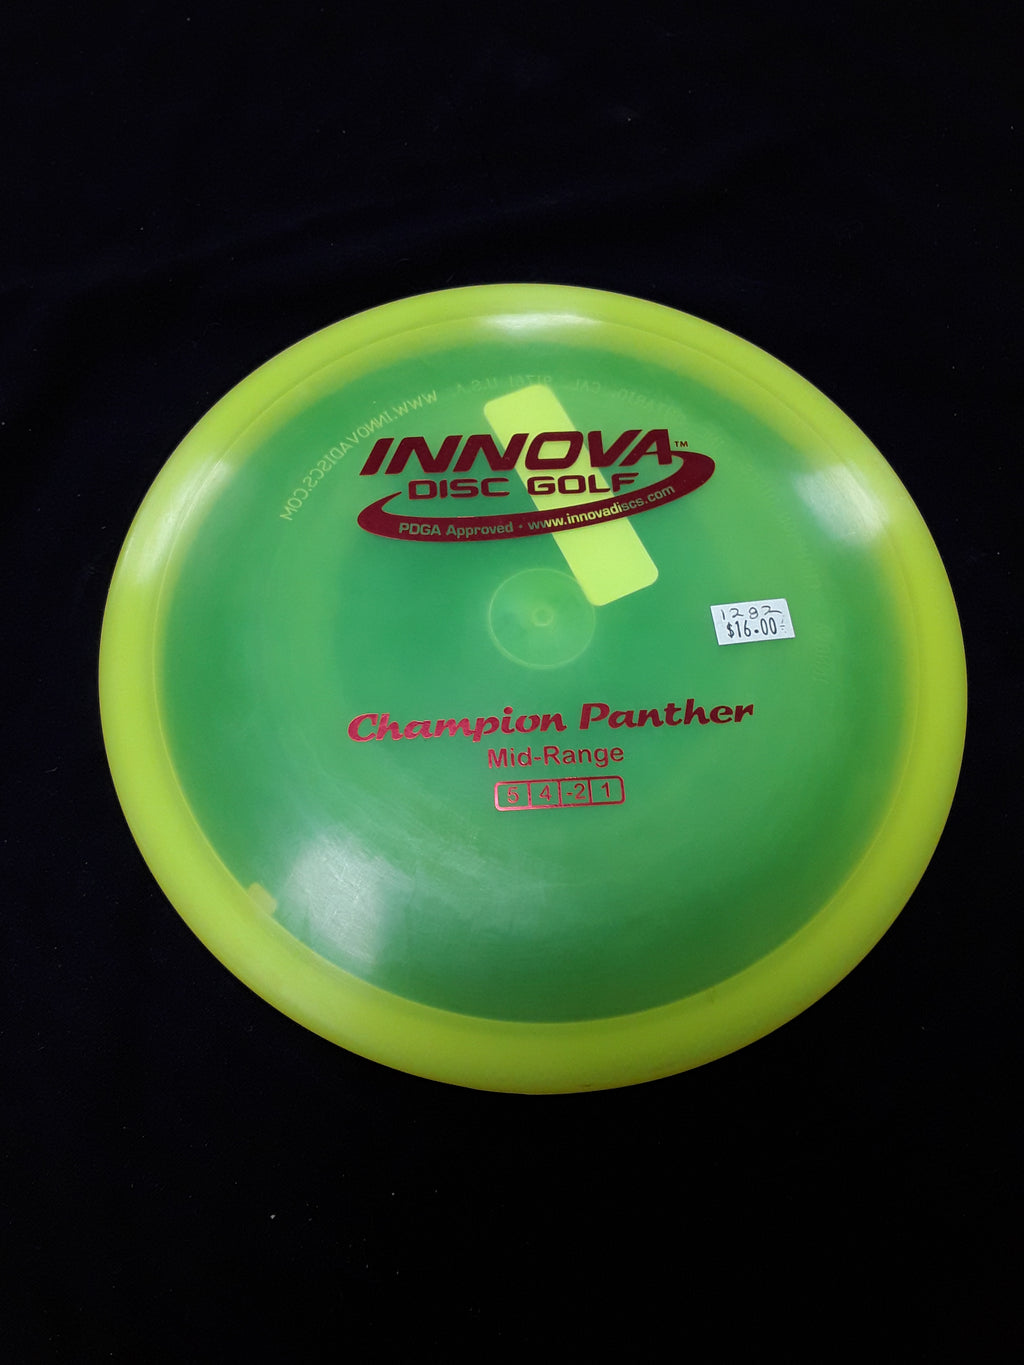 Innova Champion Panther Midrange Lime Green